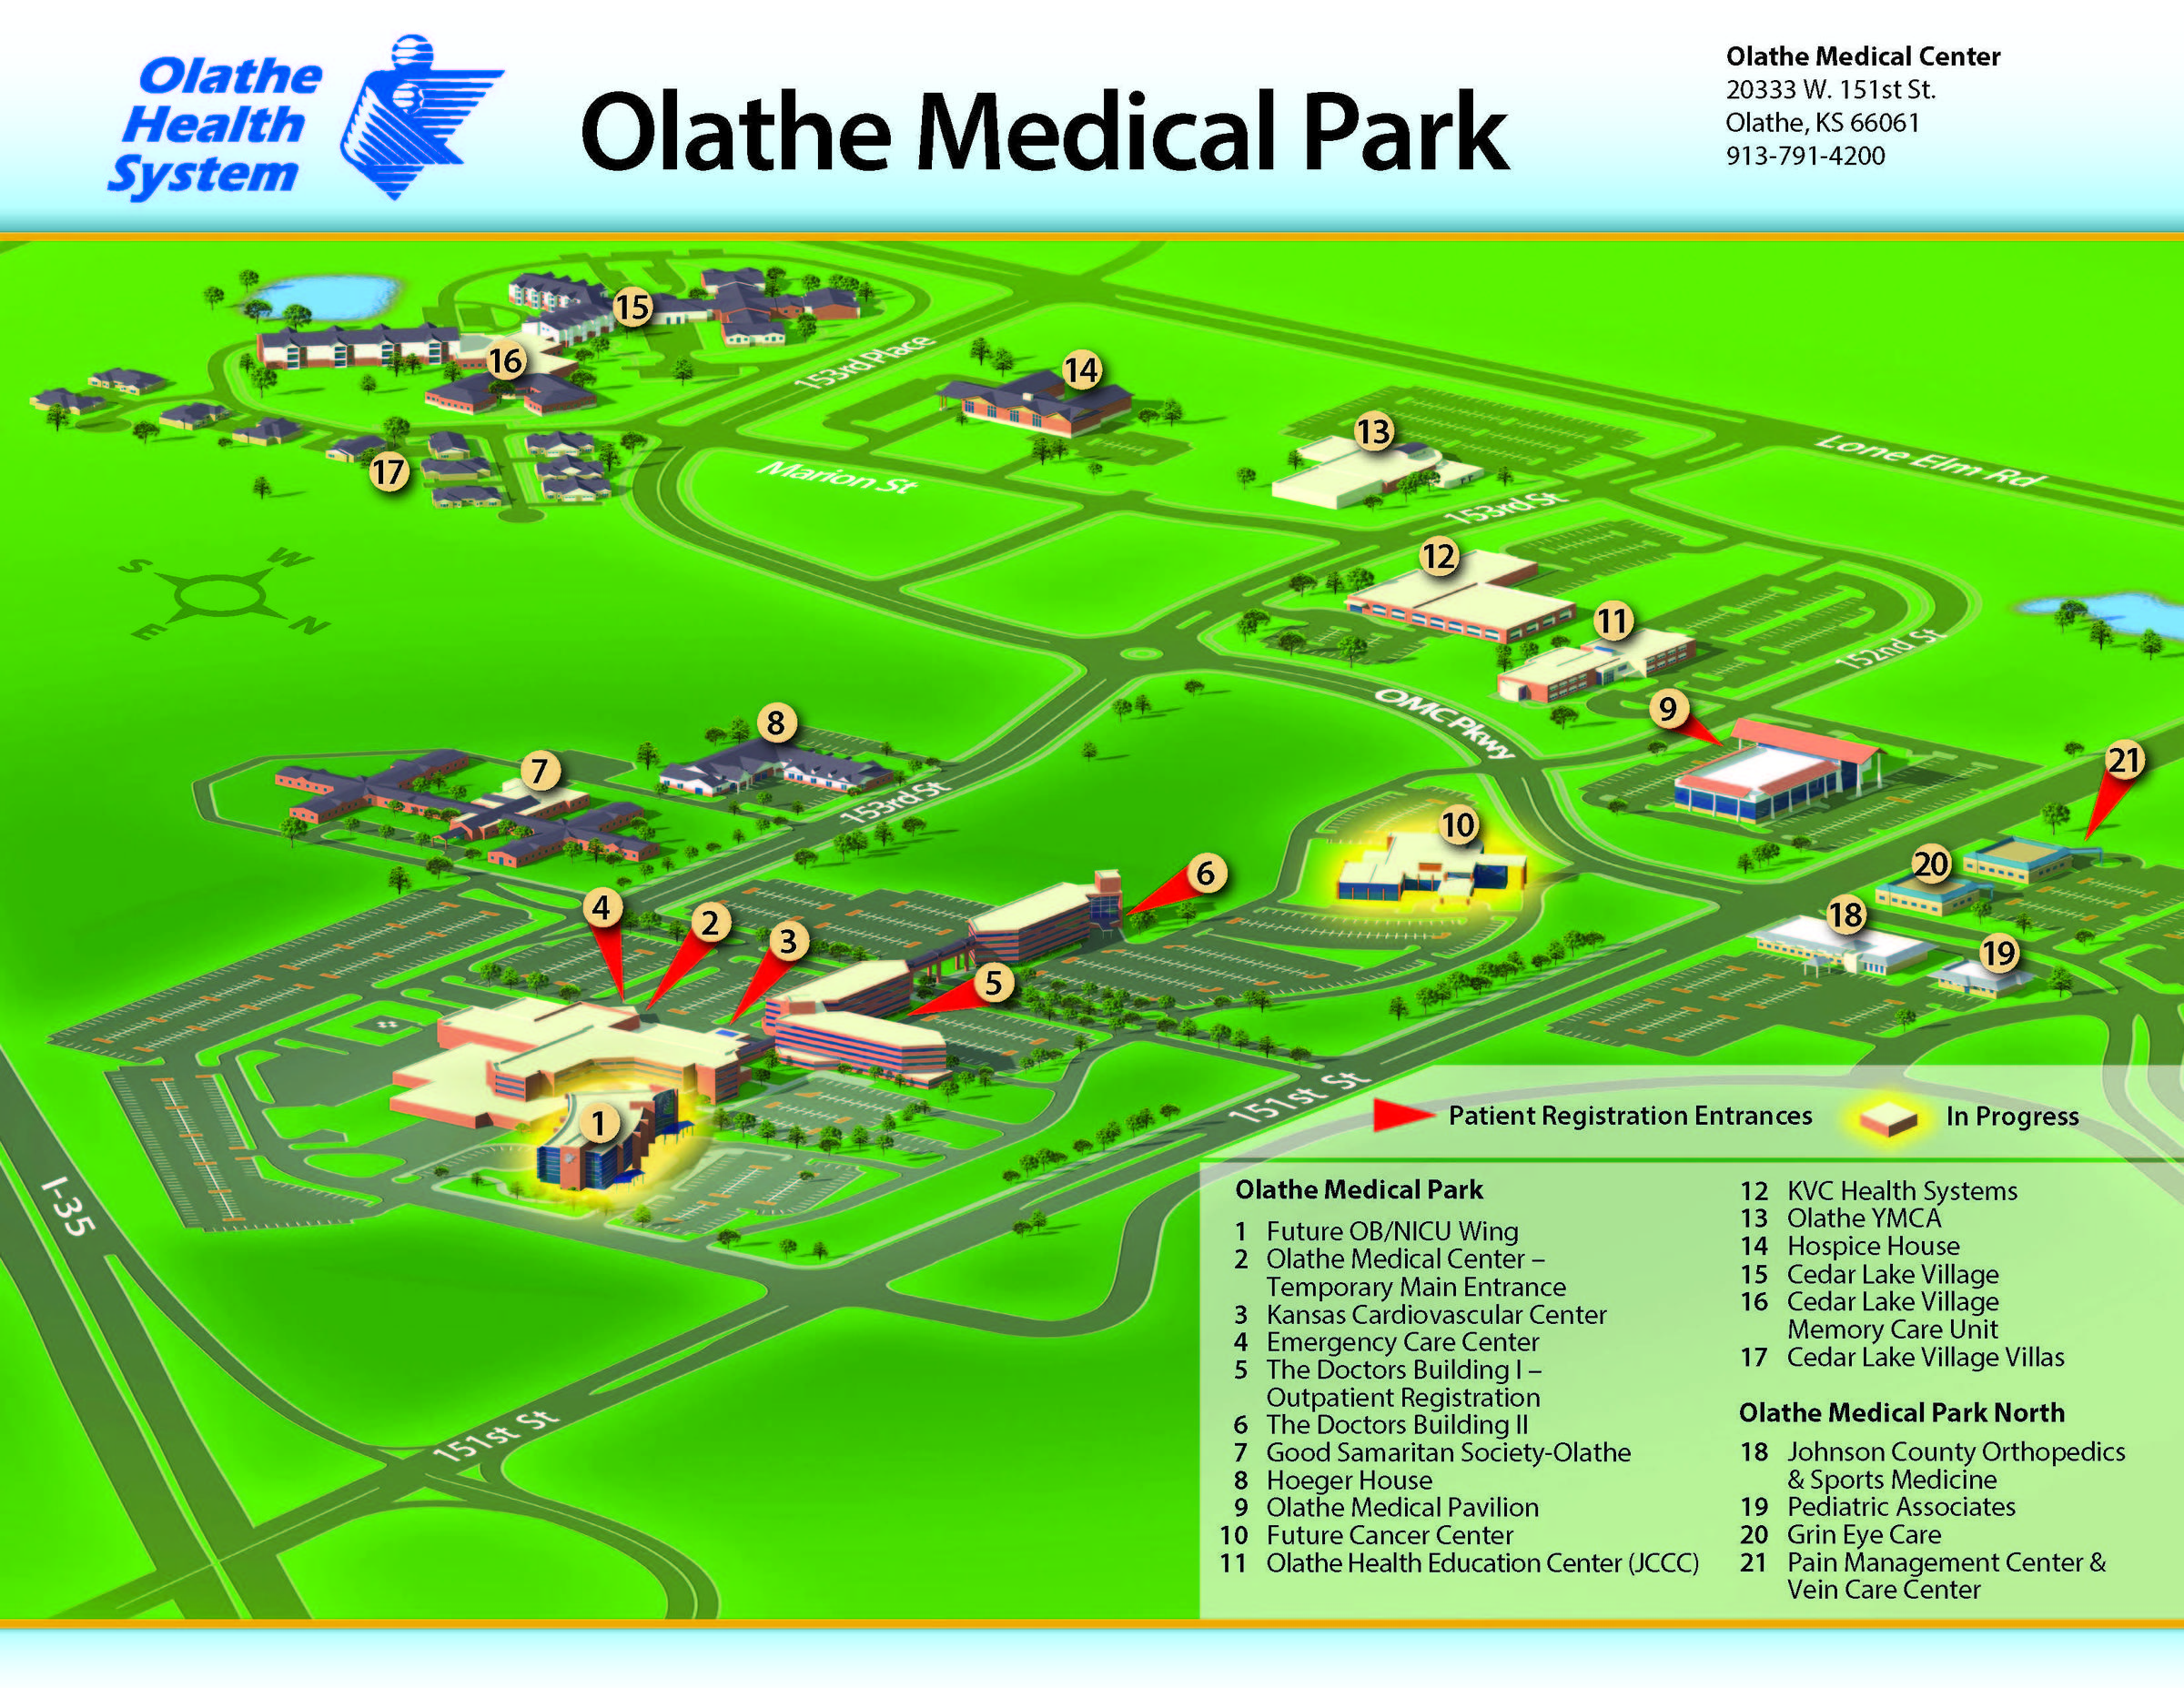 Olathe Medical Center Breaks Ground On $25M Cancer Center  of American medical services kansas